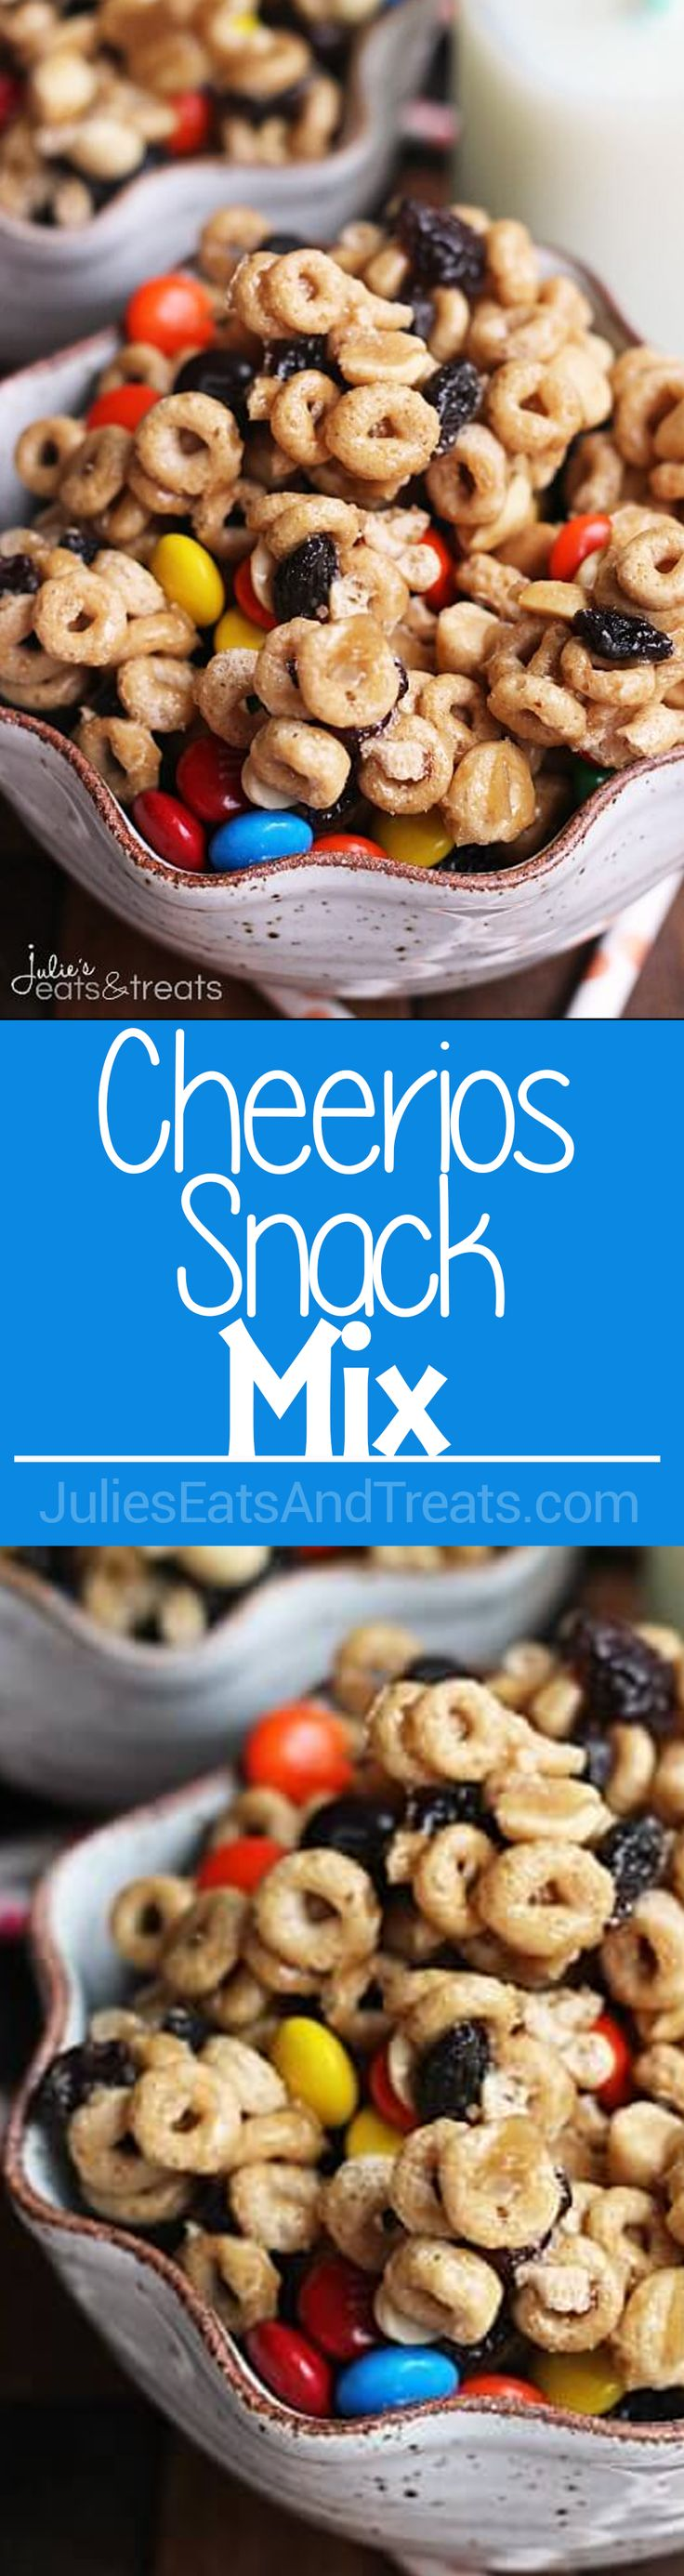 Cheerios Snack Mix ~ Easy, Sweet & Delicious Snack Mix Stuffed with Cheerios, Peanuts, Raisins & M&M's! via @julieseats